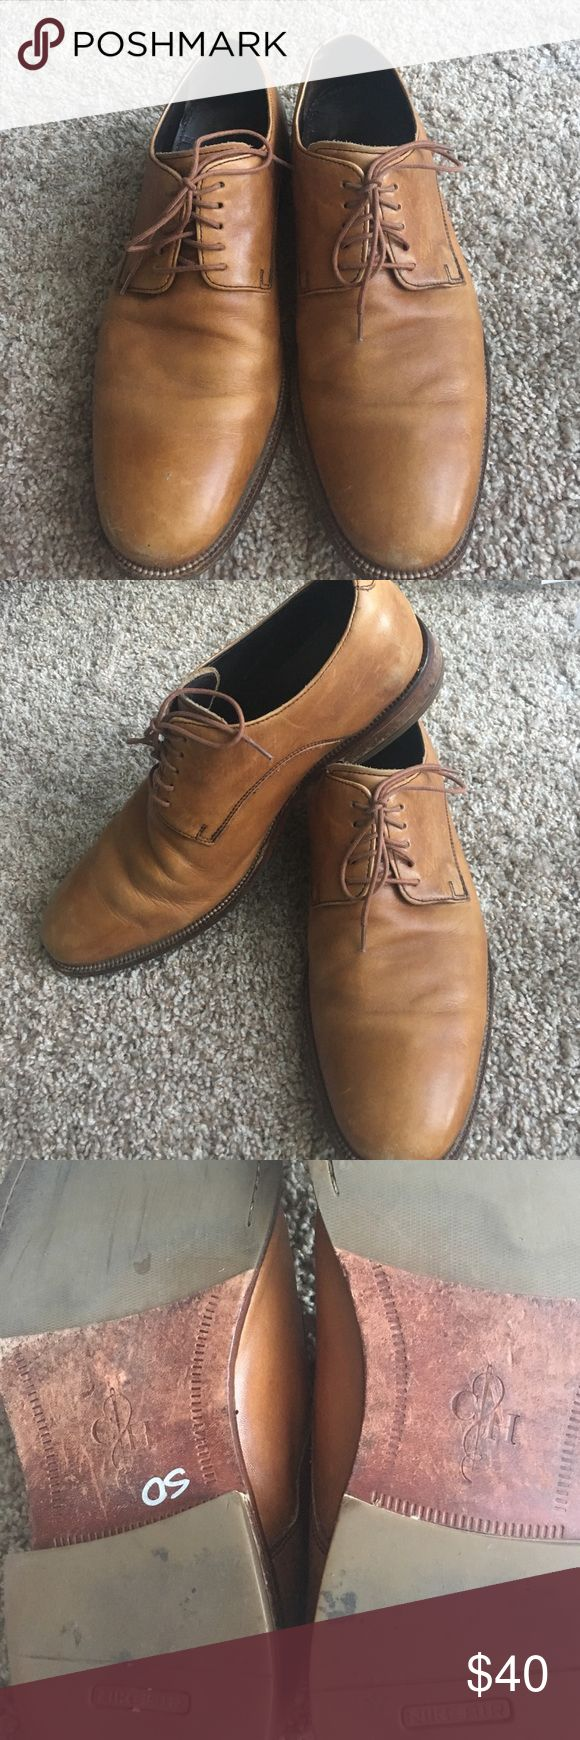 Cole Haan Shoes 12 Size 12 Cole Haan dress shoes with Nike Air technology. Very comfortable and in good condition. Has a few scuffs but in overall good condition Cole Haan Shoes